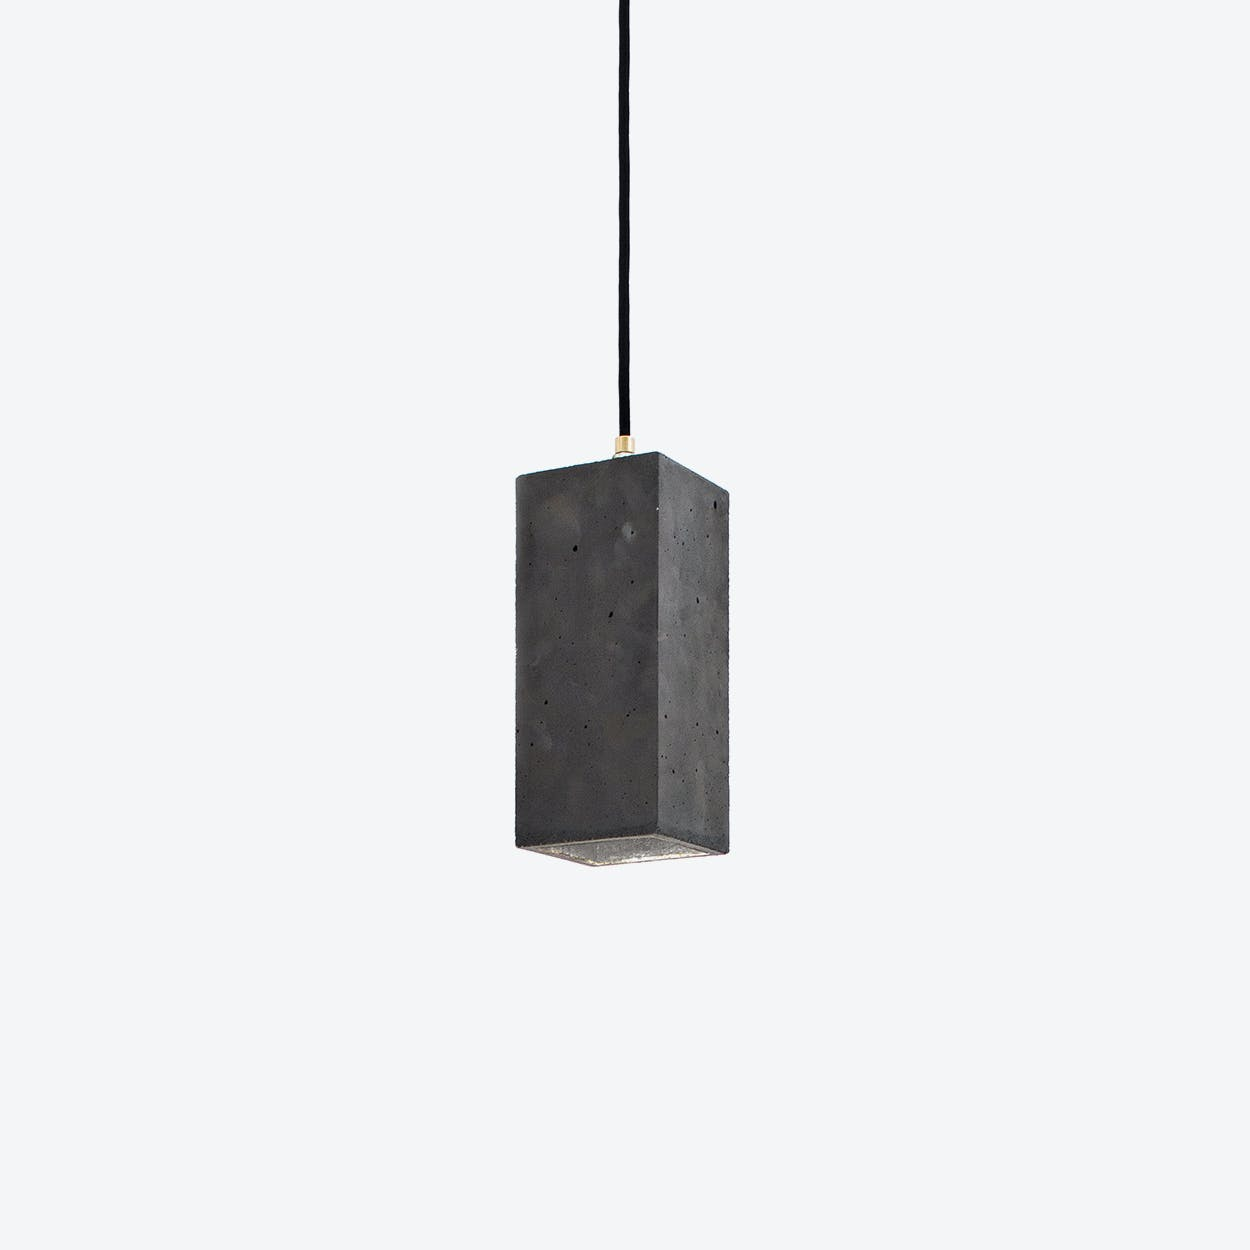 Concrete Pendant Light Retangular B2 in Dark Grey and Silver